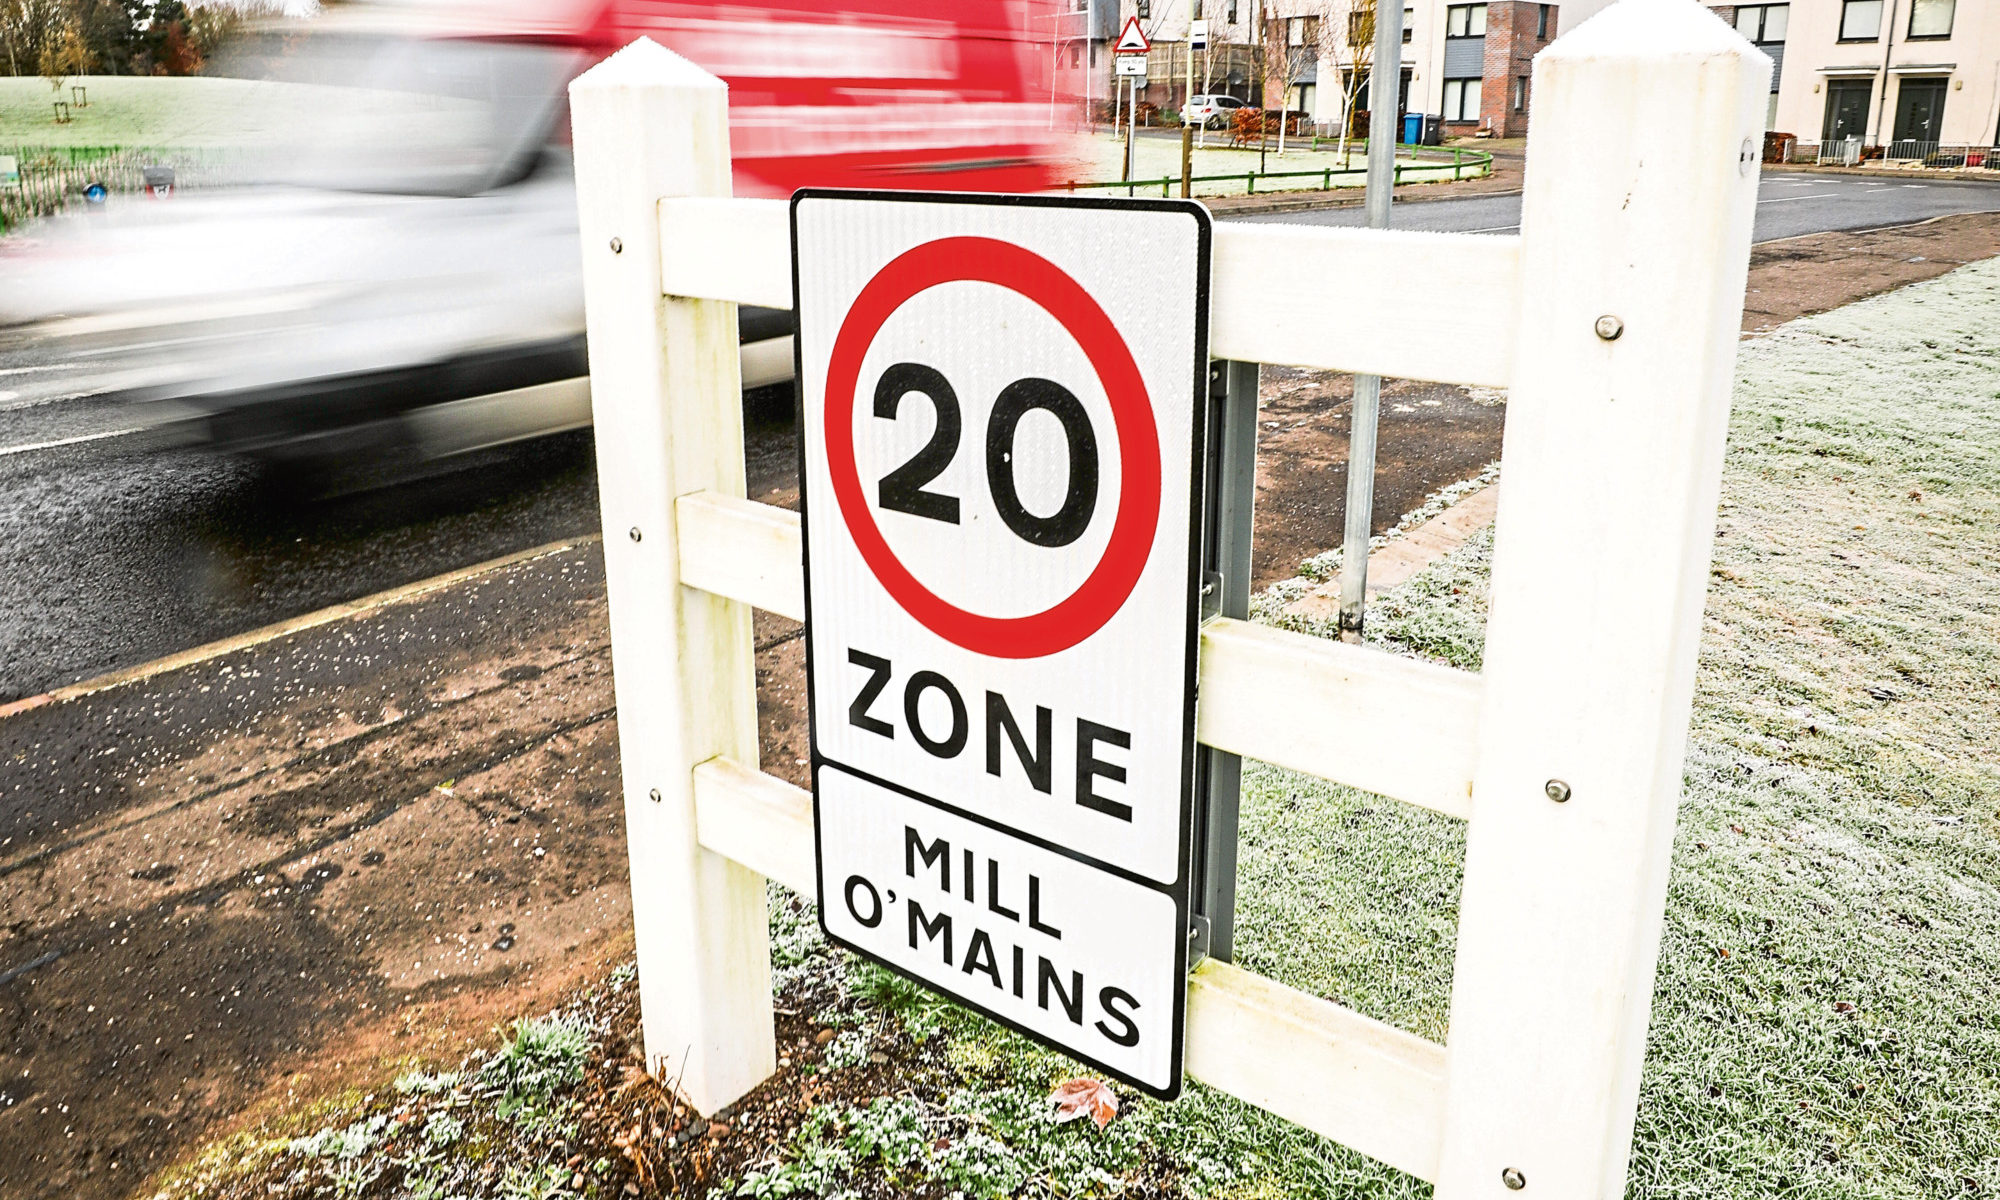 Tele News, Dundee story, CR0016561 . Antisocial behaviour and speeding in Mill o Mains, Dundee as people use the estate as a short cut to miss Forfar Road traffic lights. Pic shows; Mill o' Mains estate and cars speeding past 20mph signs. Tuesday, 19th November, 2019. Kris Miller/DCT Media.